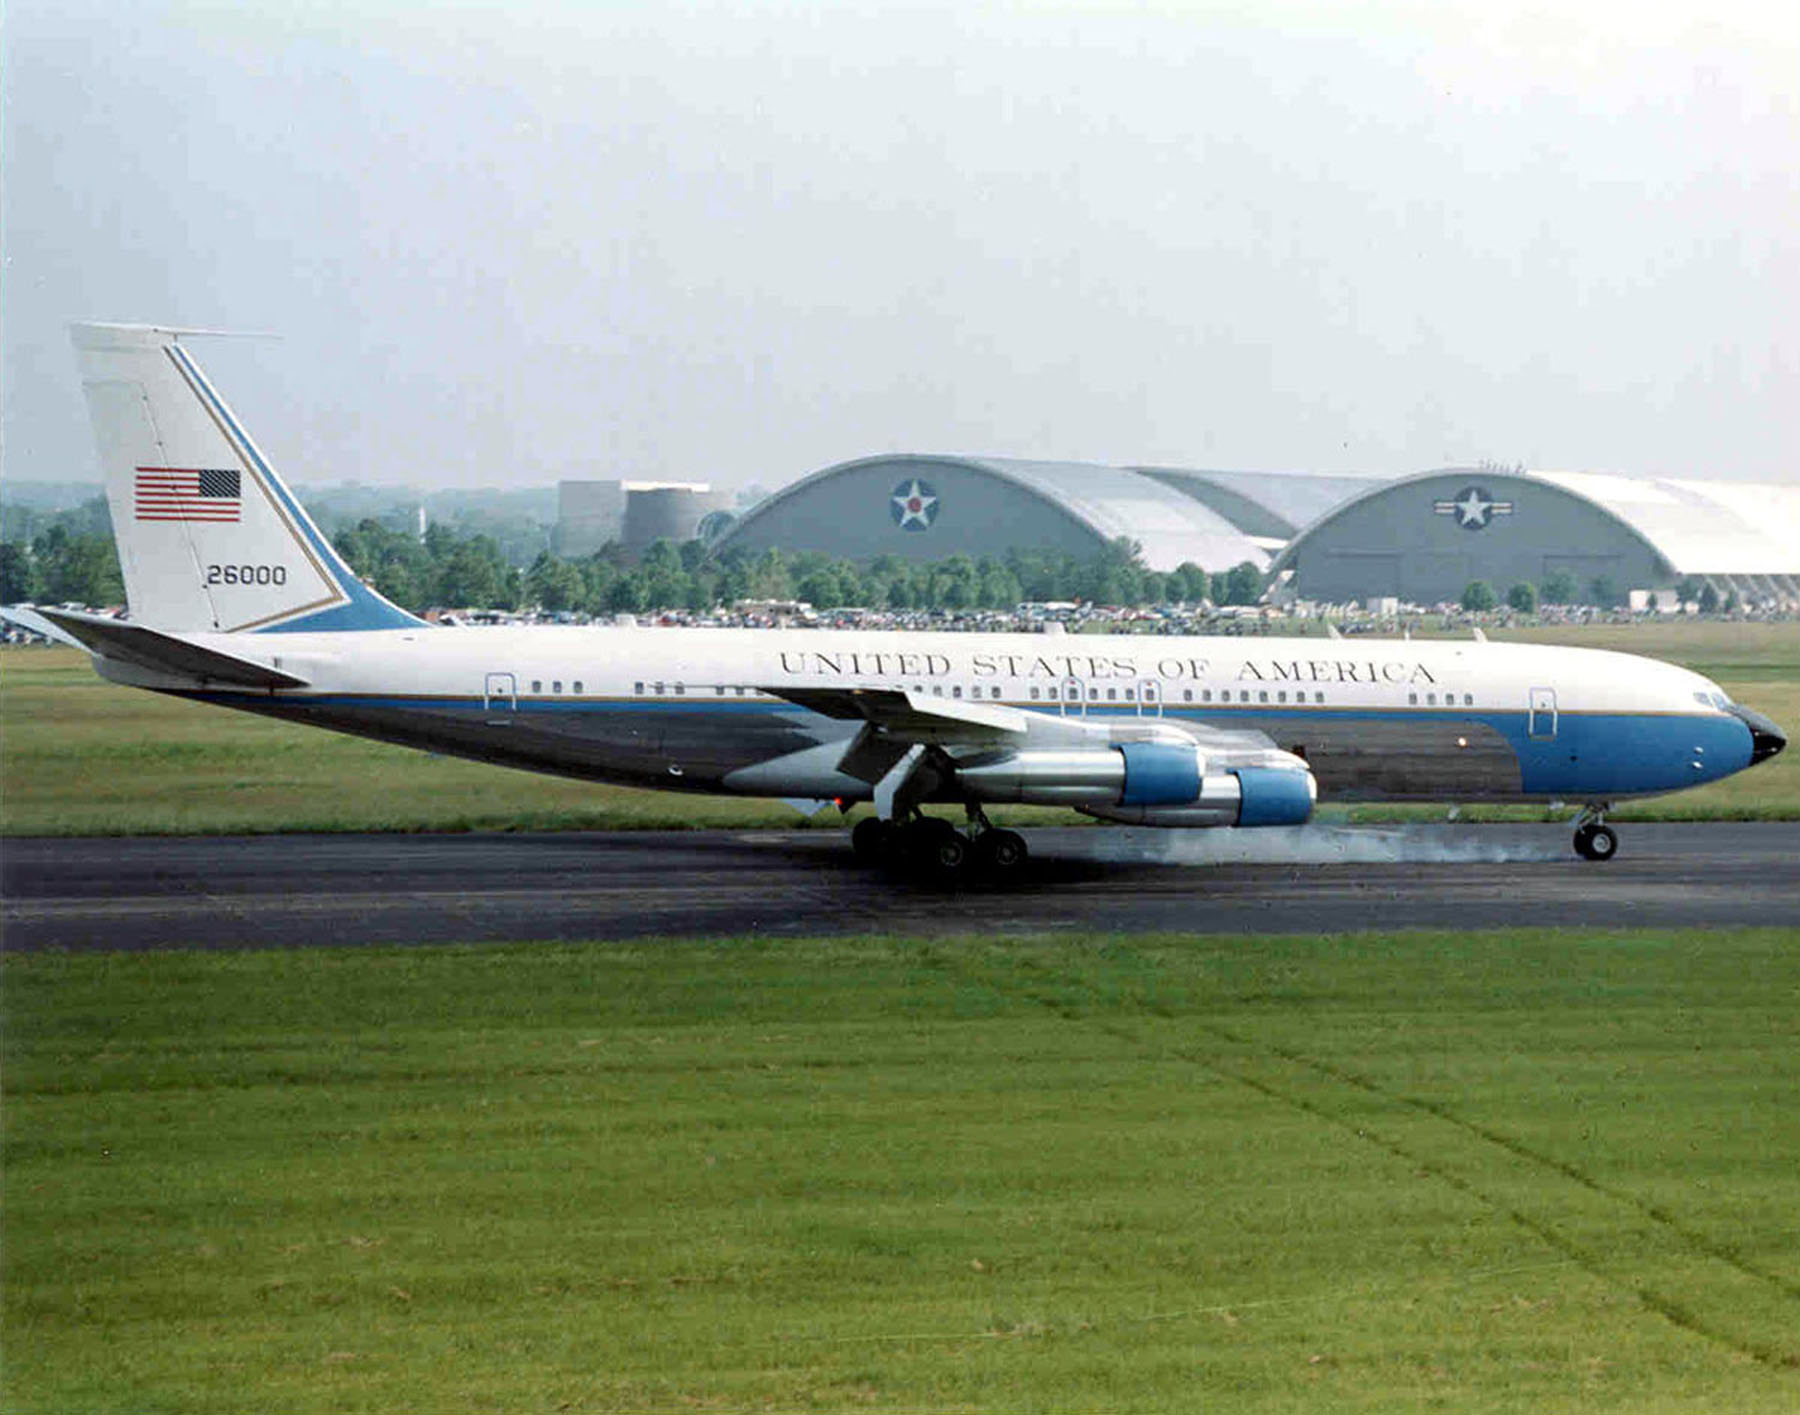 Air Force One - White House